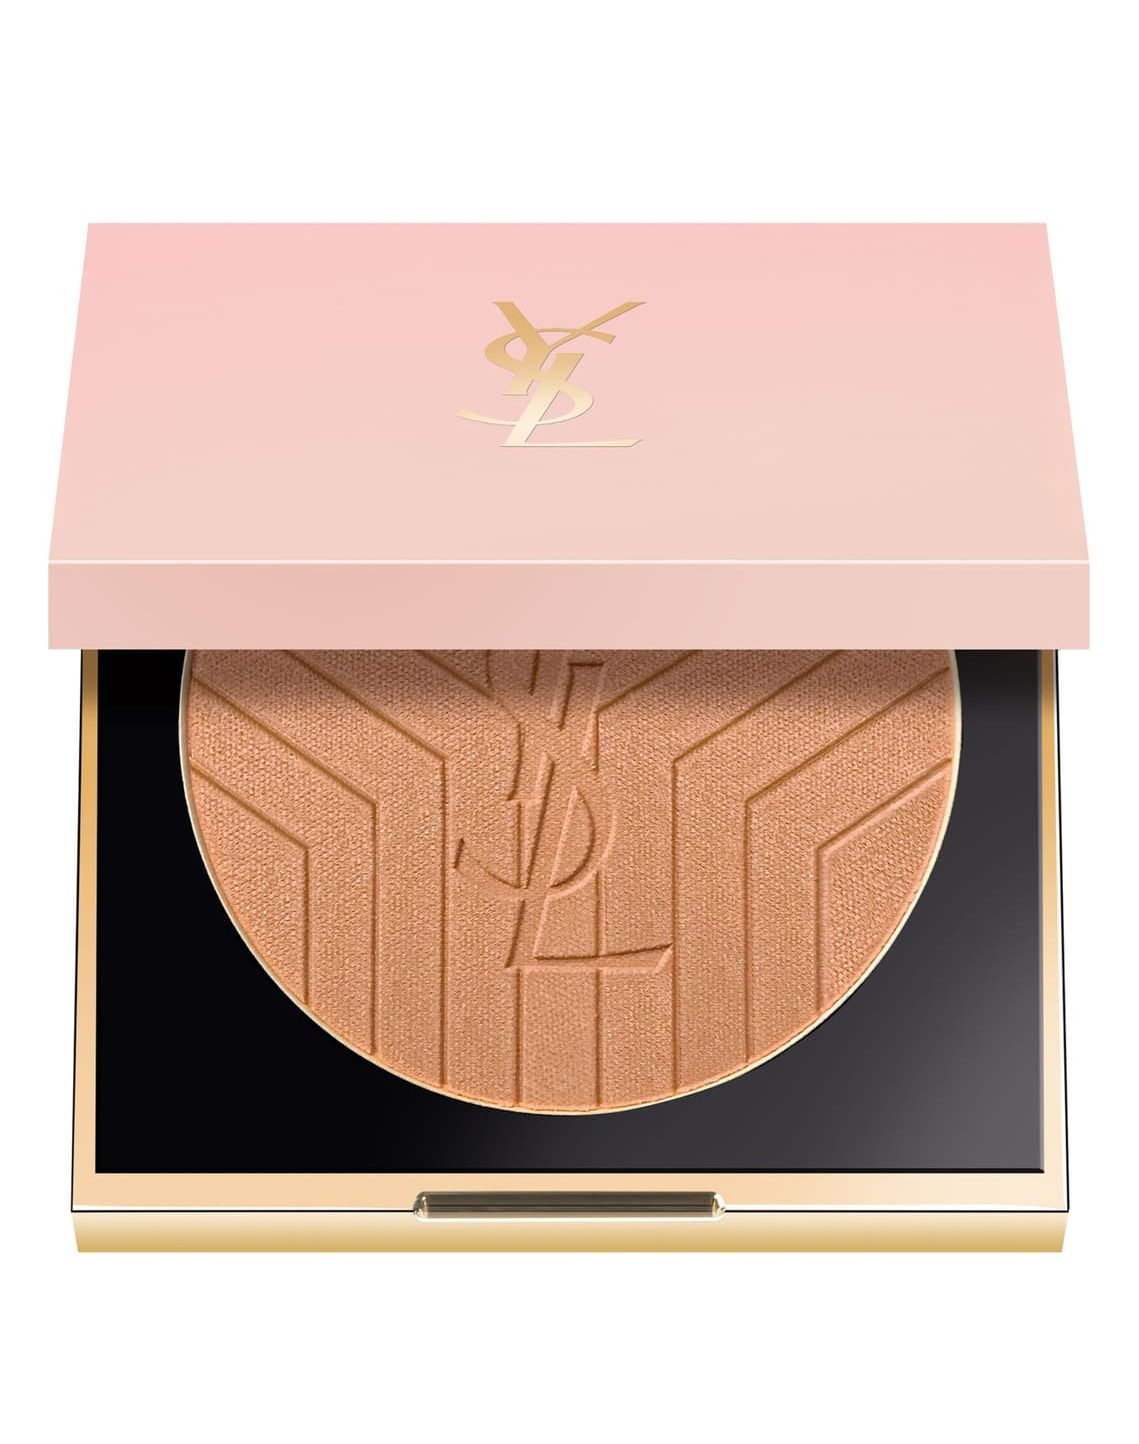 YSL Touche Eclat 3D All Over Glow Powder